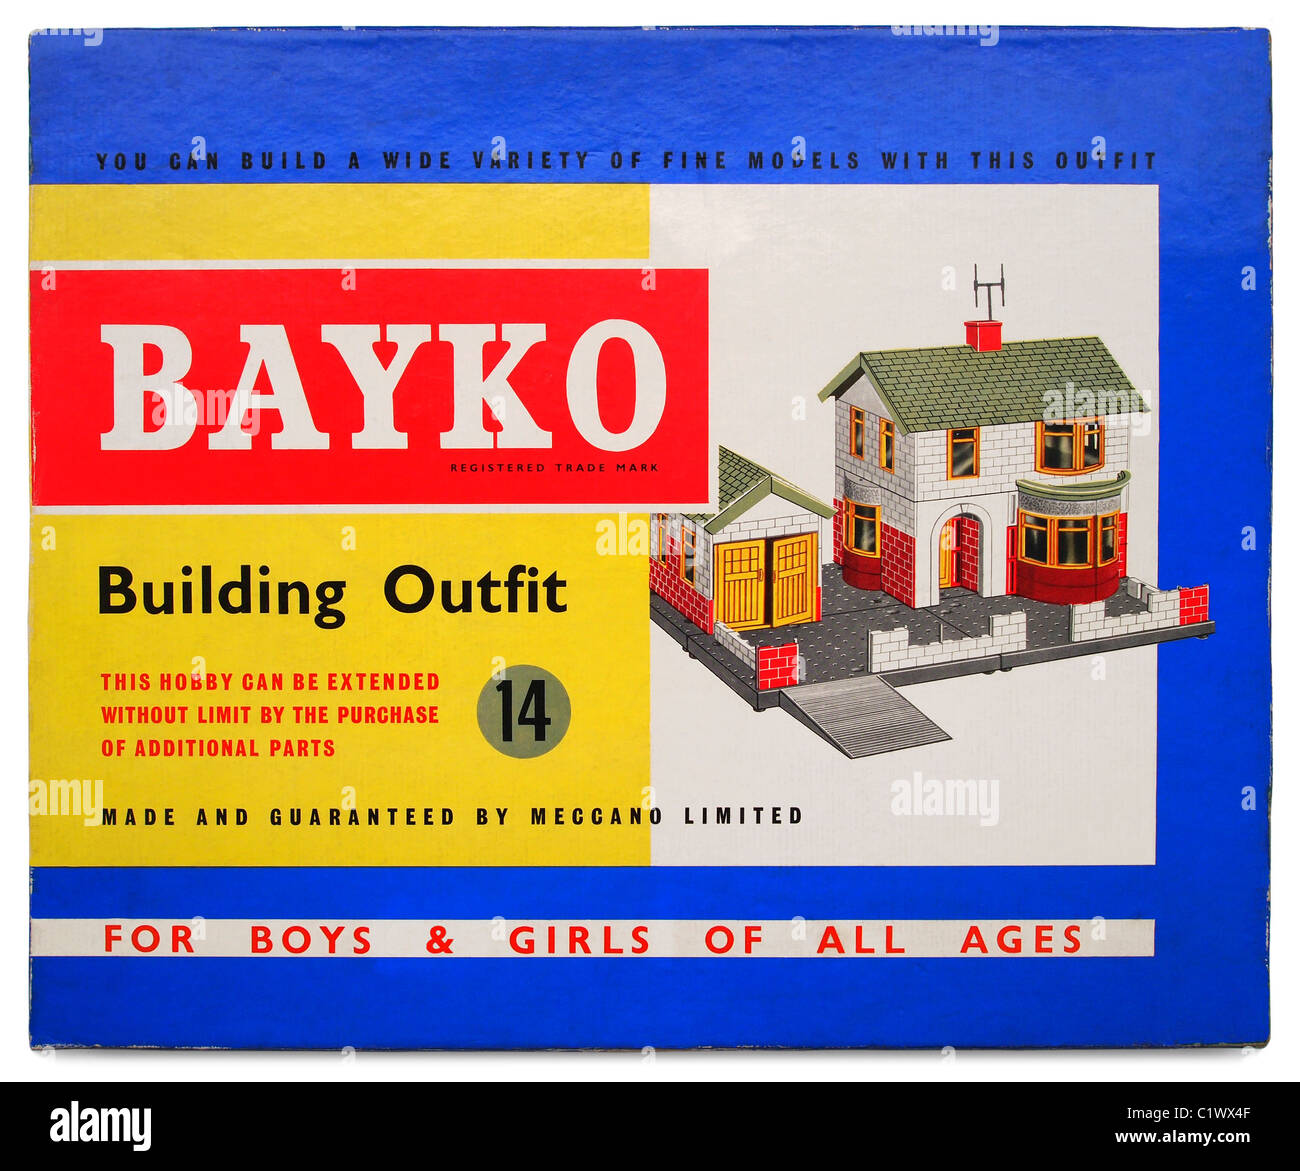 Bayko Building Set (Outfit 14) c. 1966.  The box lid illustration features a model of a 1930s-style detached house - Stock Image